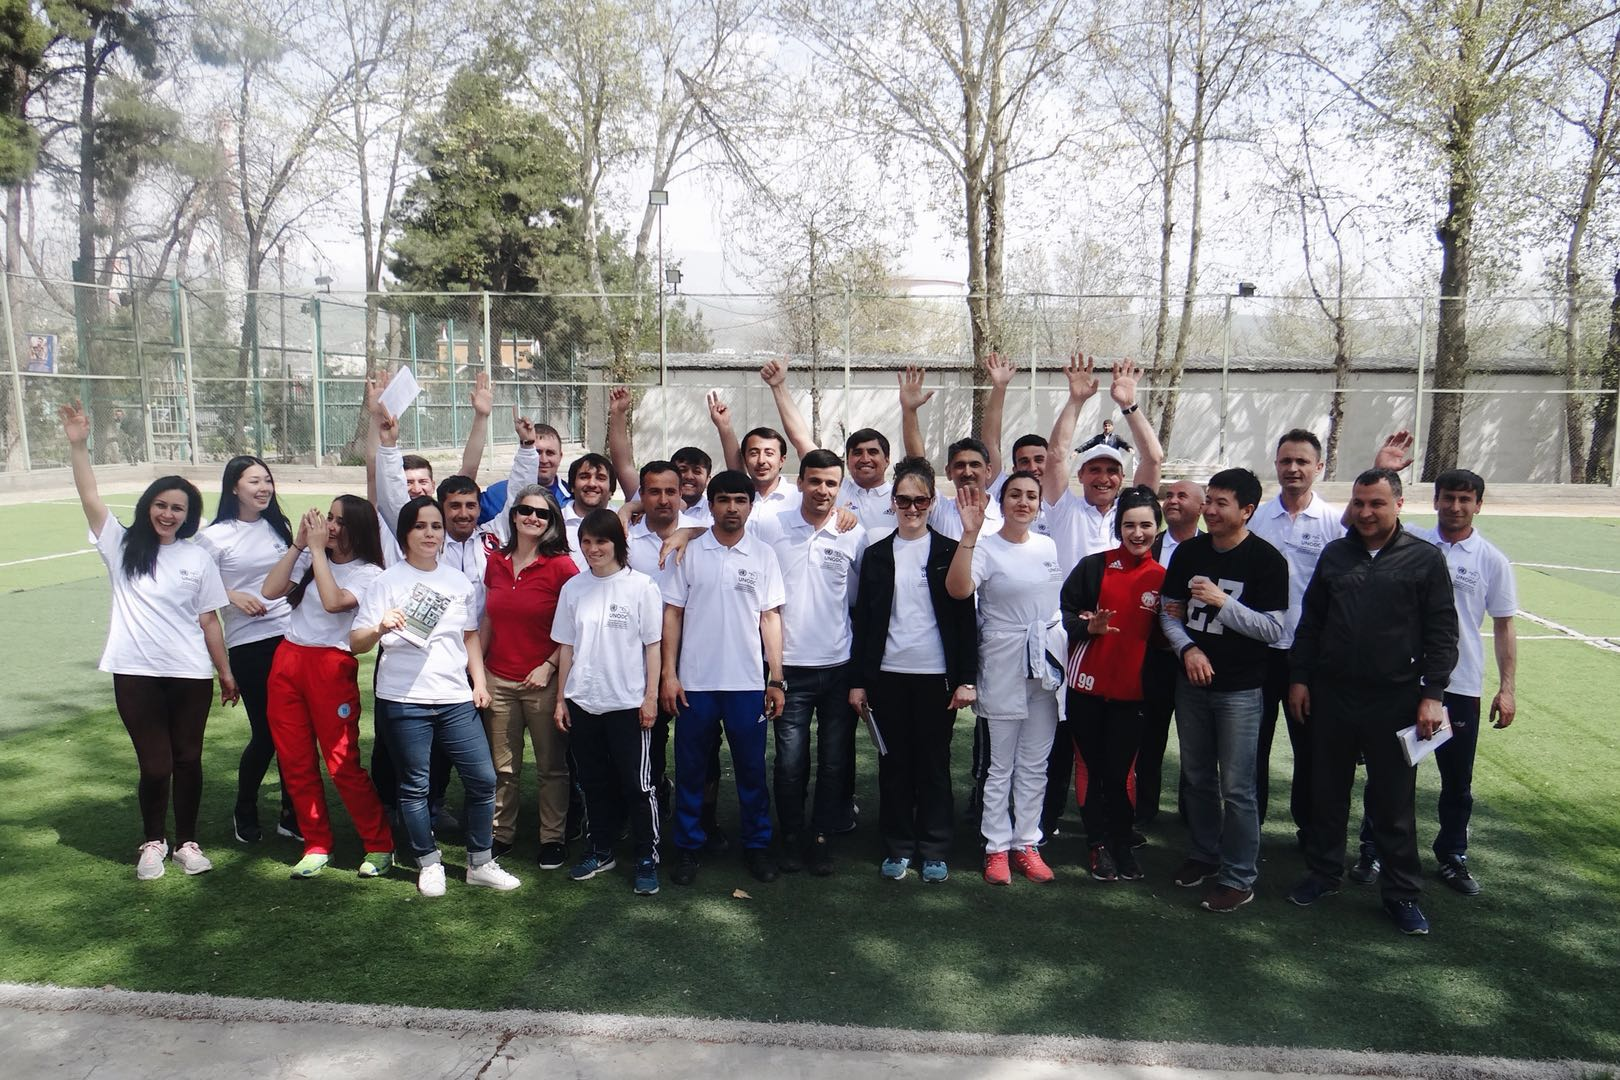 UNODC and Tajikistan work together to build youth resilience through sport